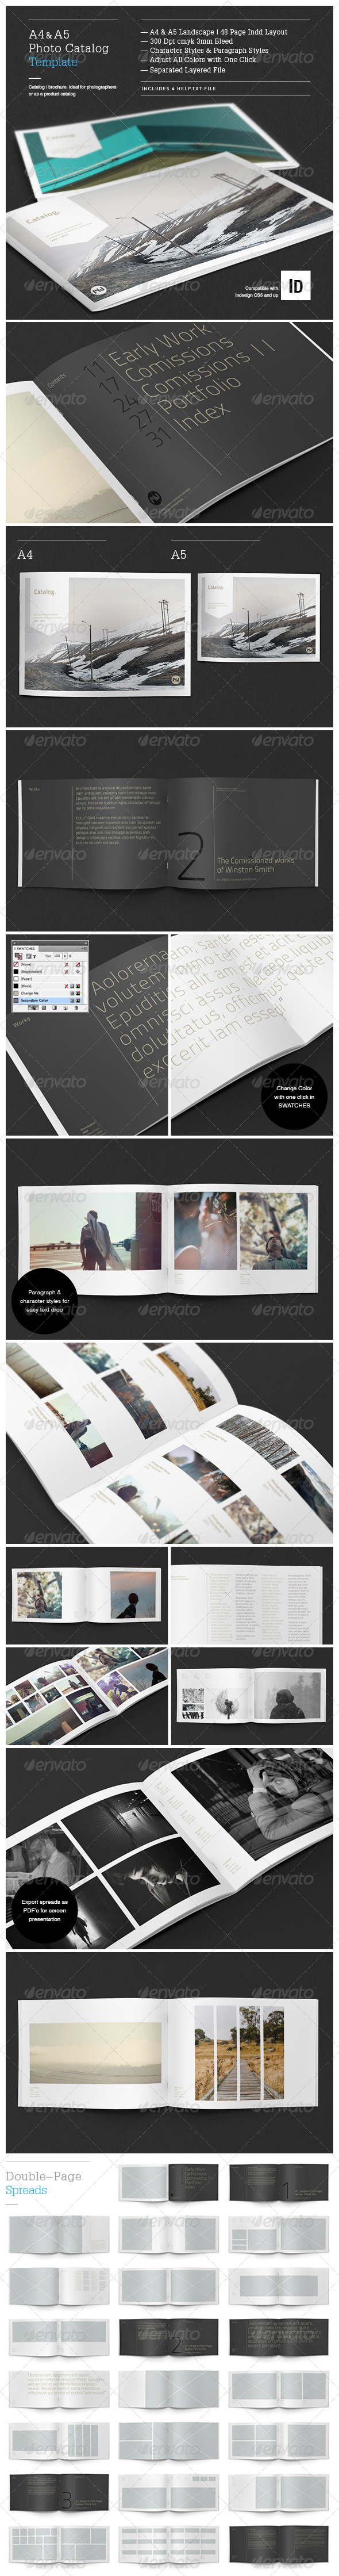 Minimal Photo Catalog Template - Brochures Print Templates